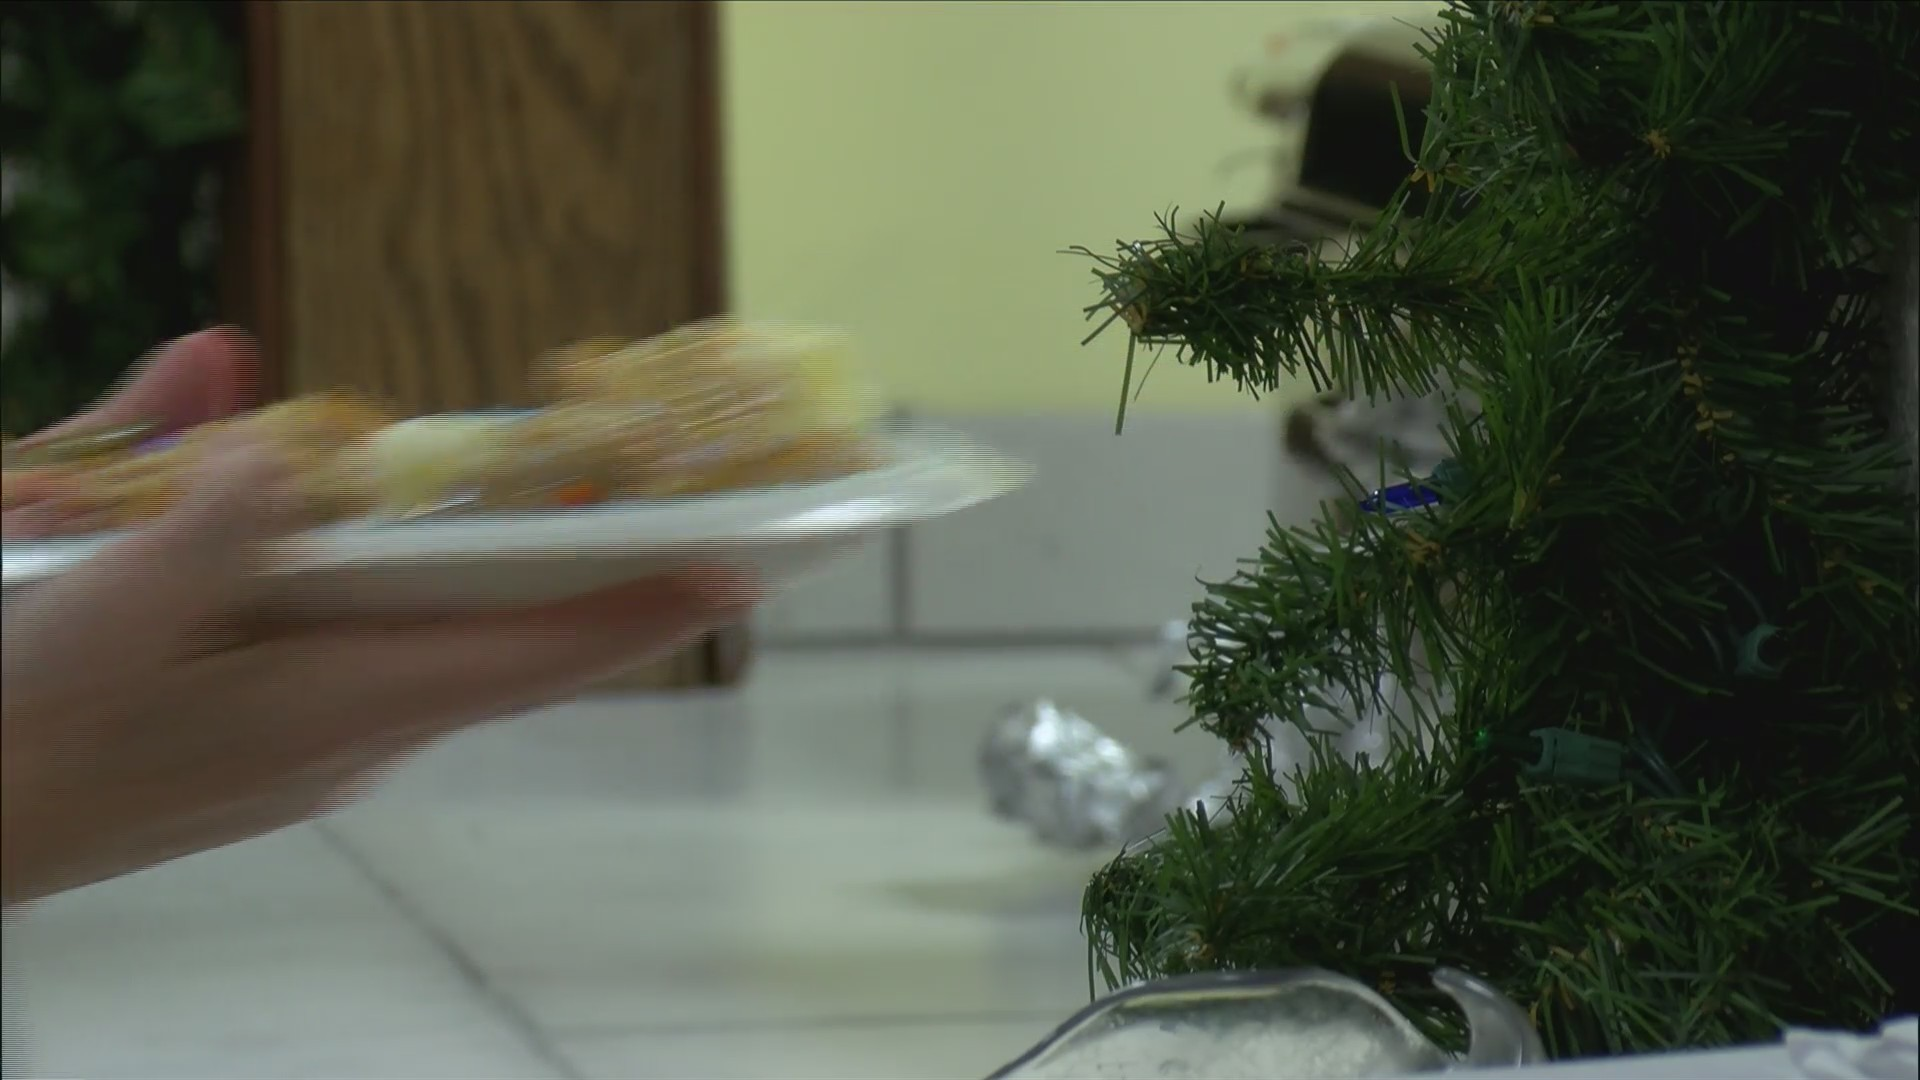 A family's tradition gifting to the community